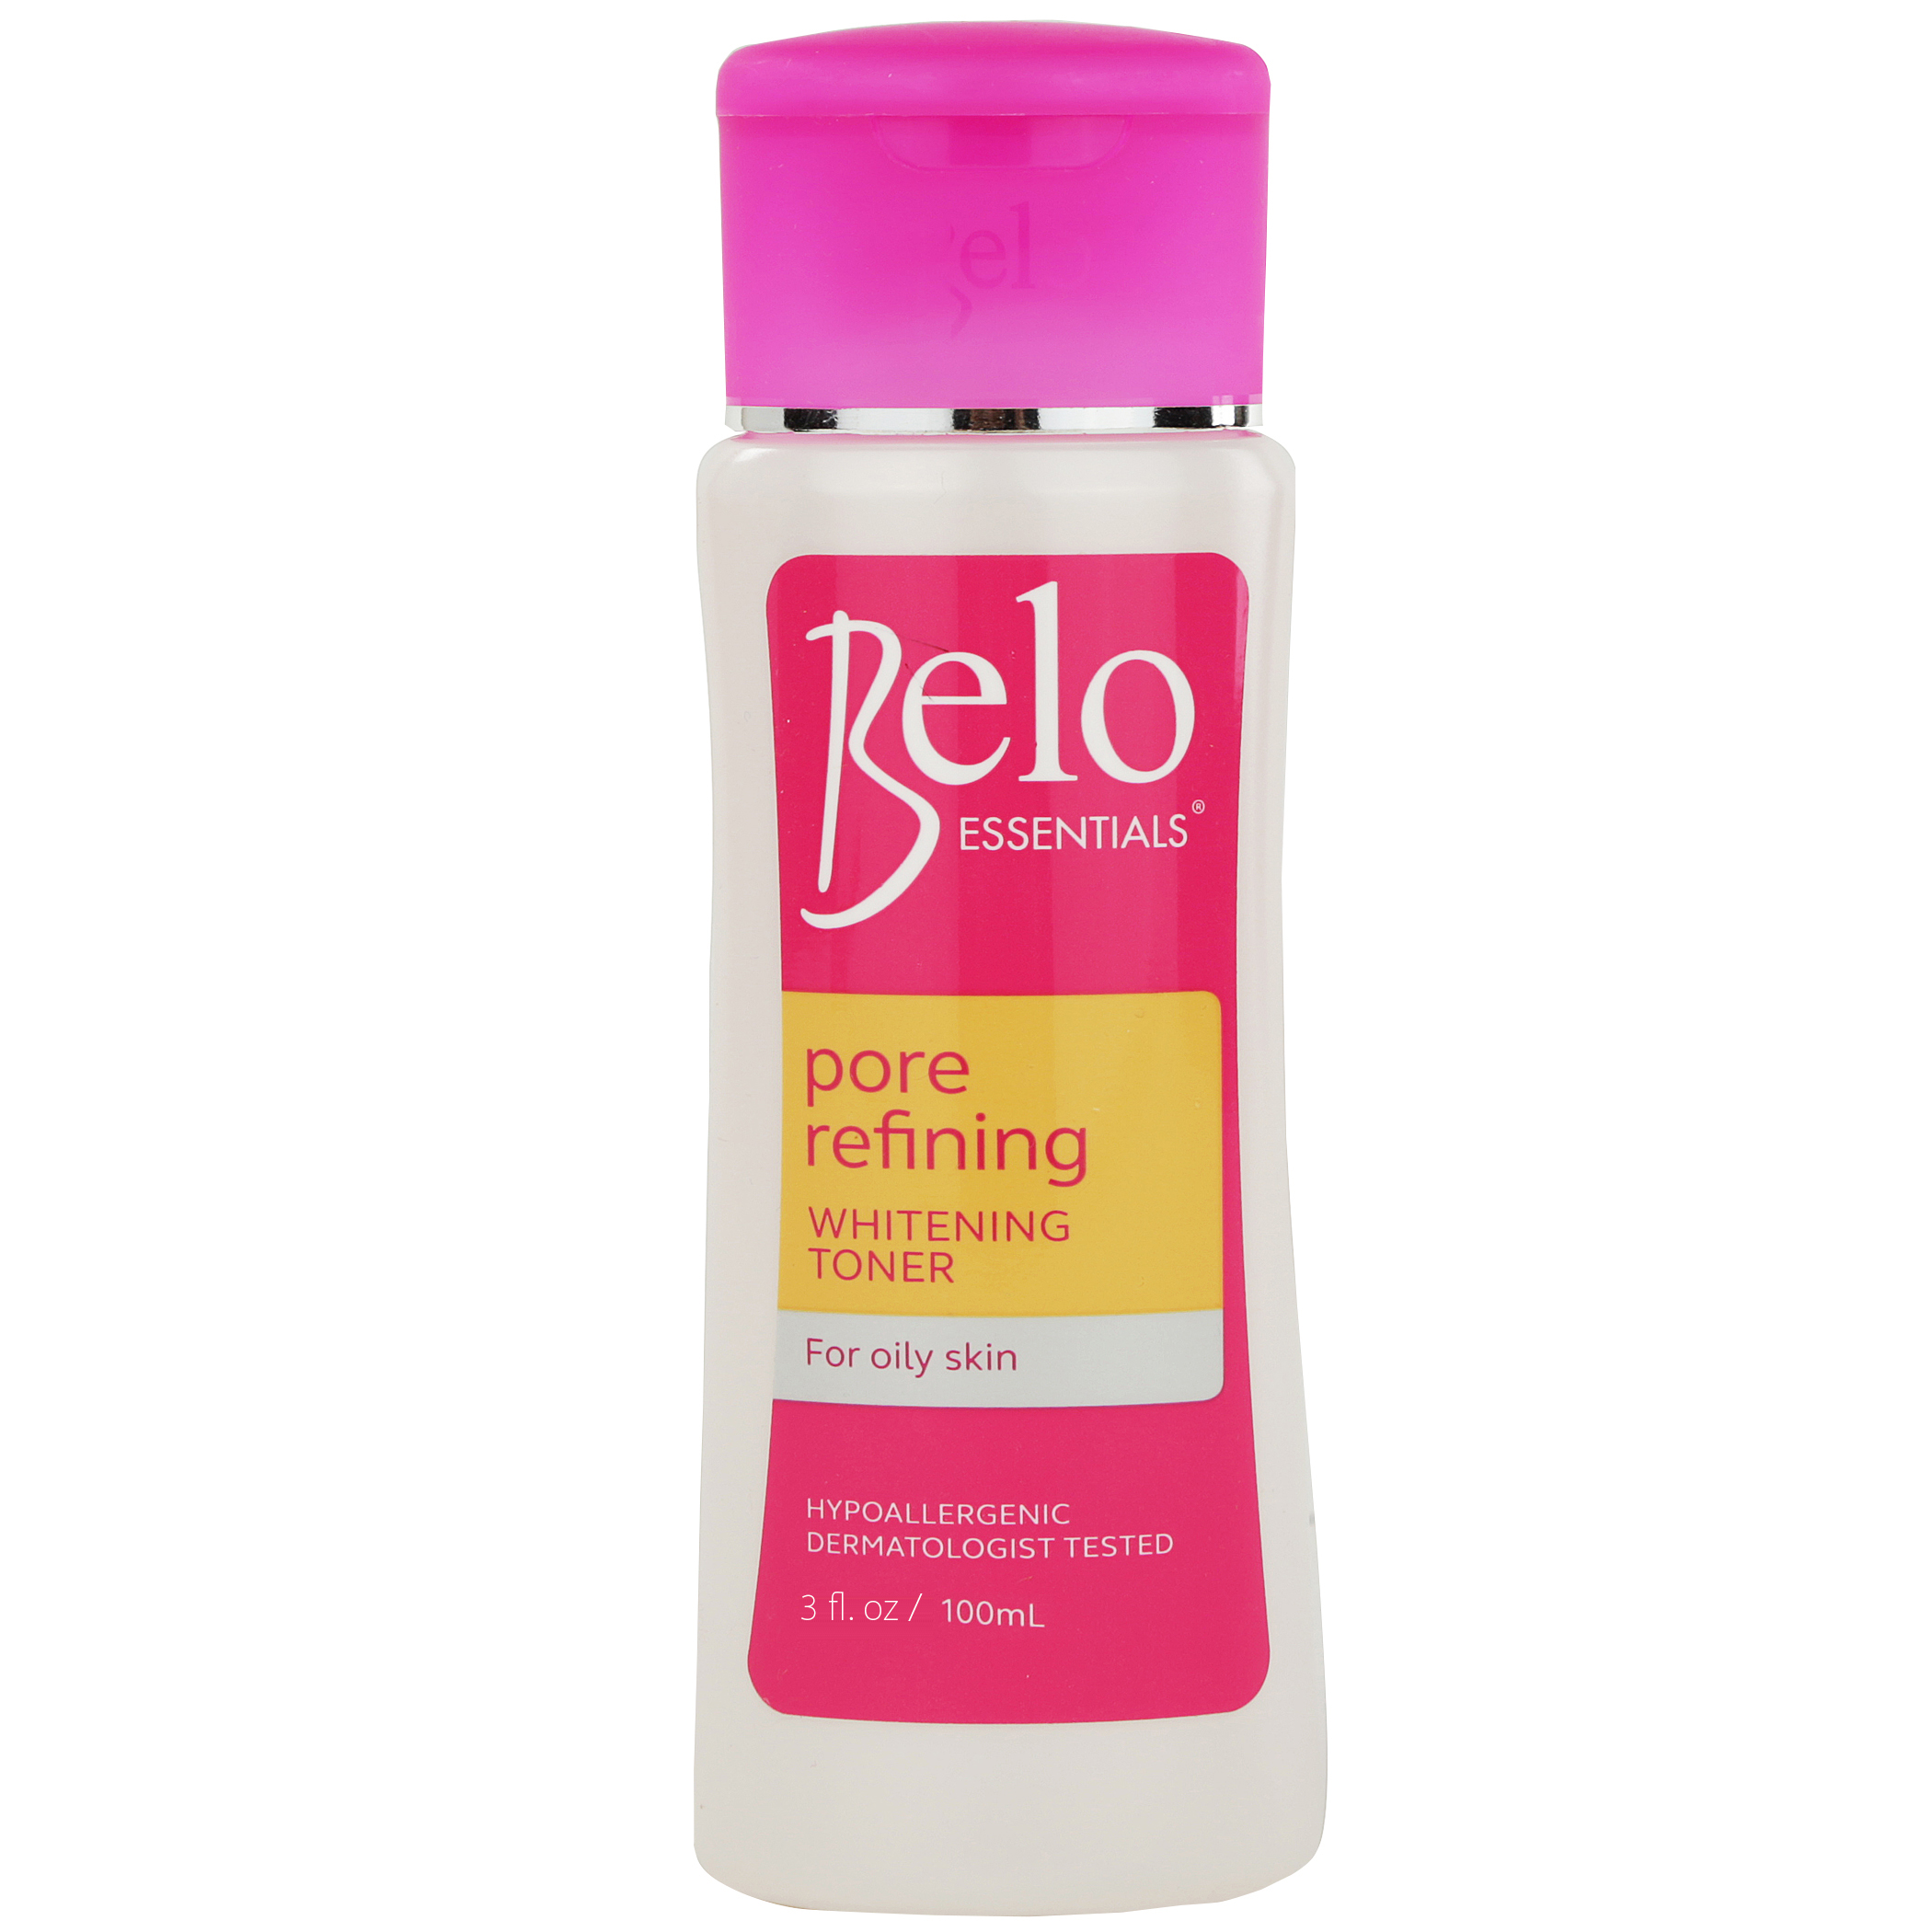 Belo Essentials Pore Refining Whitening Toner Great For Oily Skin